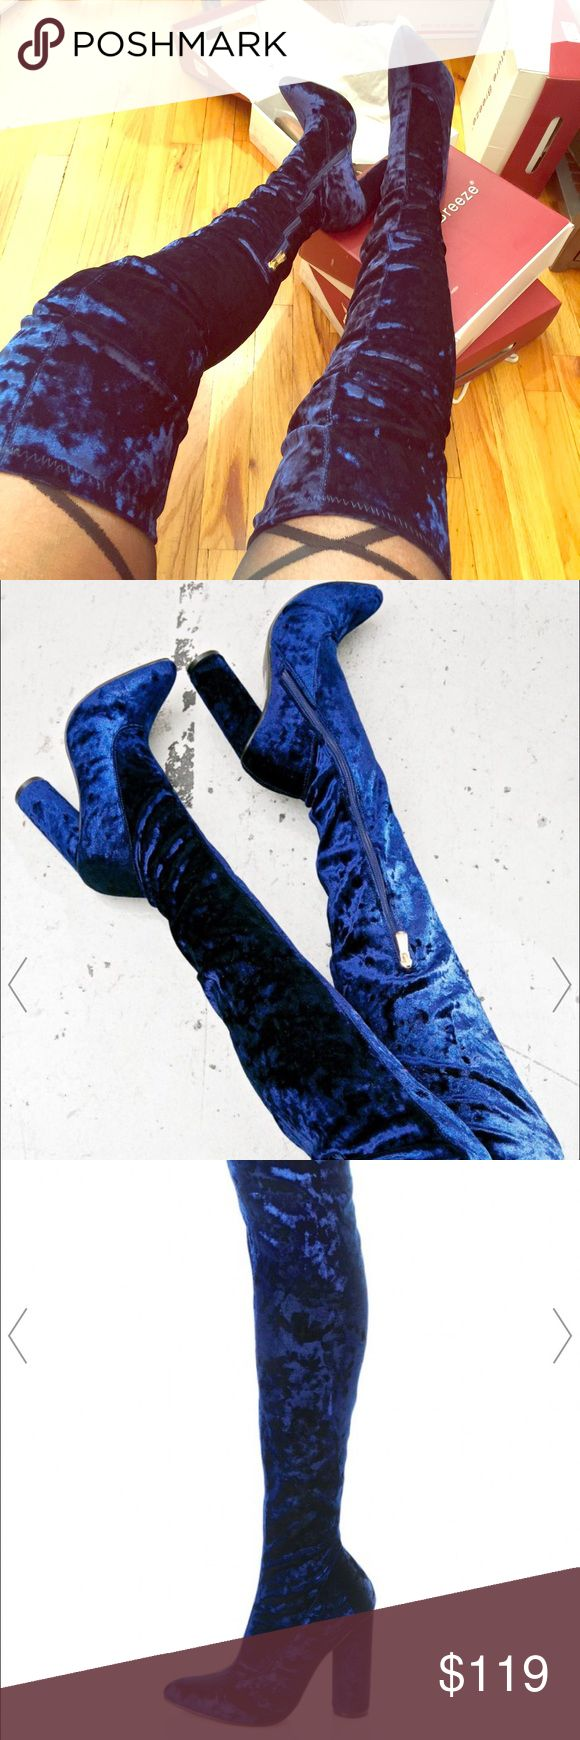 New fall collection by viviglam 🍁👢🍂👢 Super sexy new fall collection royal blue velvet over the knees chunky heels stylish celebrity boots new in a box gorgeous 🍁👢🍁👢 Shoes Over the Knee Boots